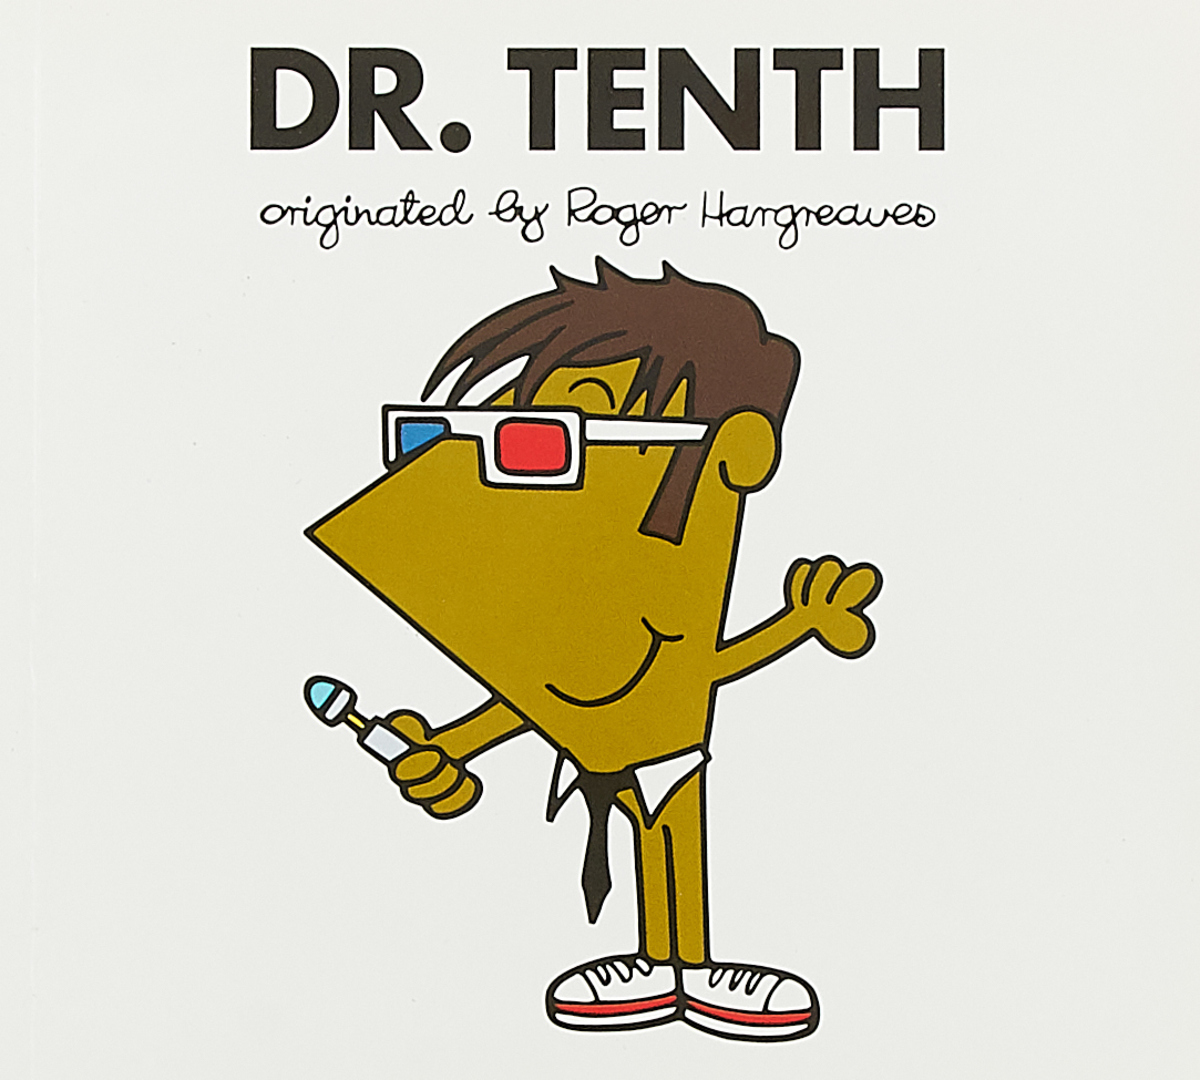 Doctor Who: Dr. Tenth doctor who dr twelfth roger hargreaves